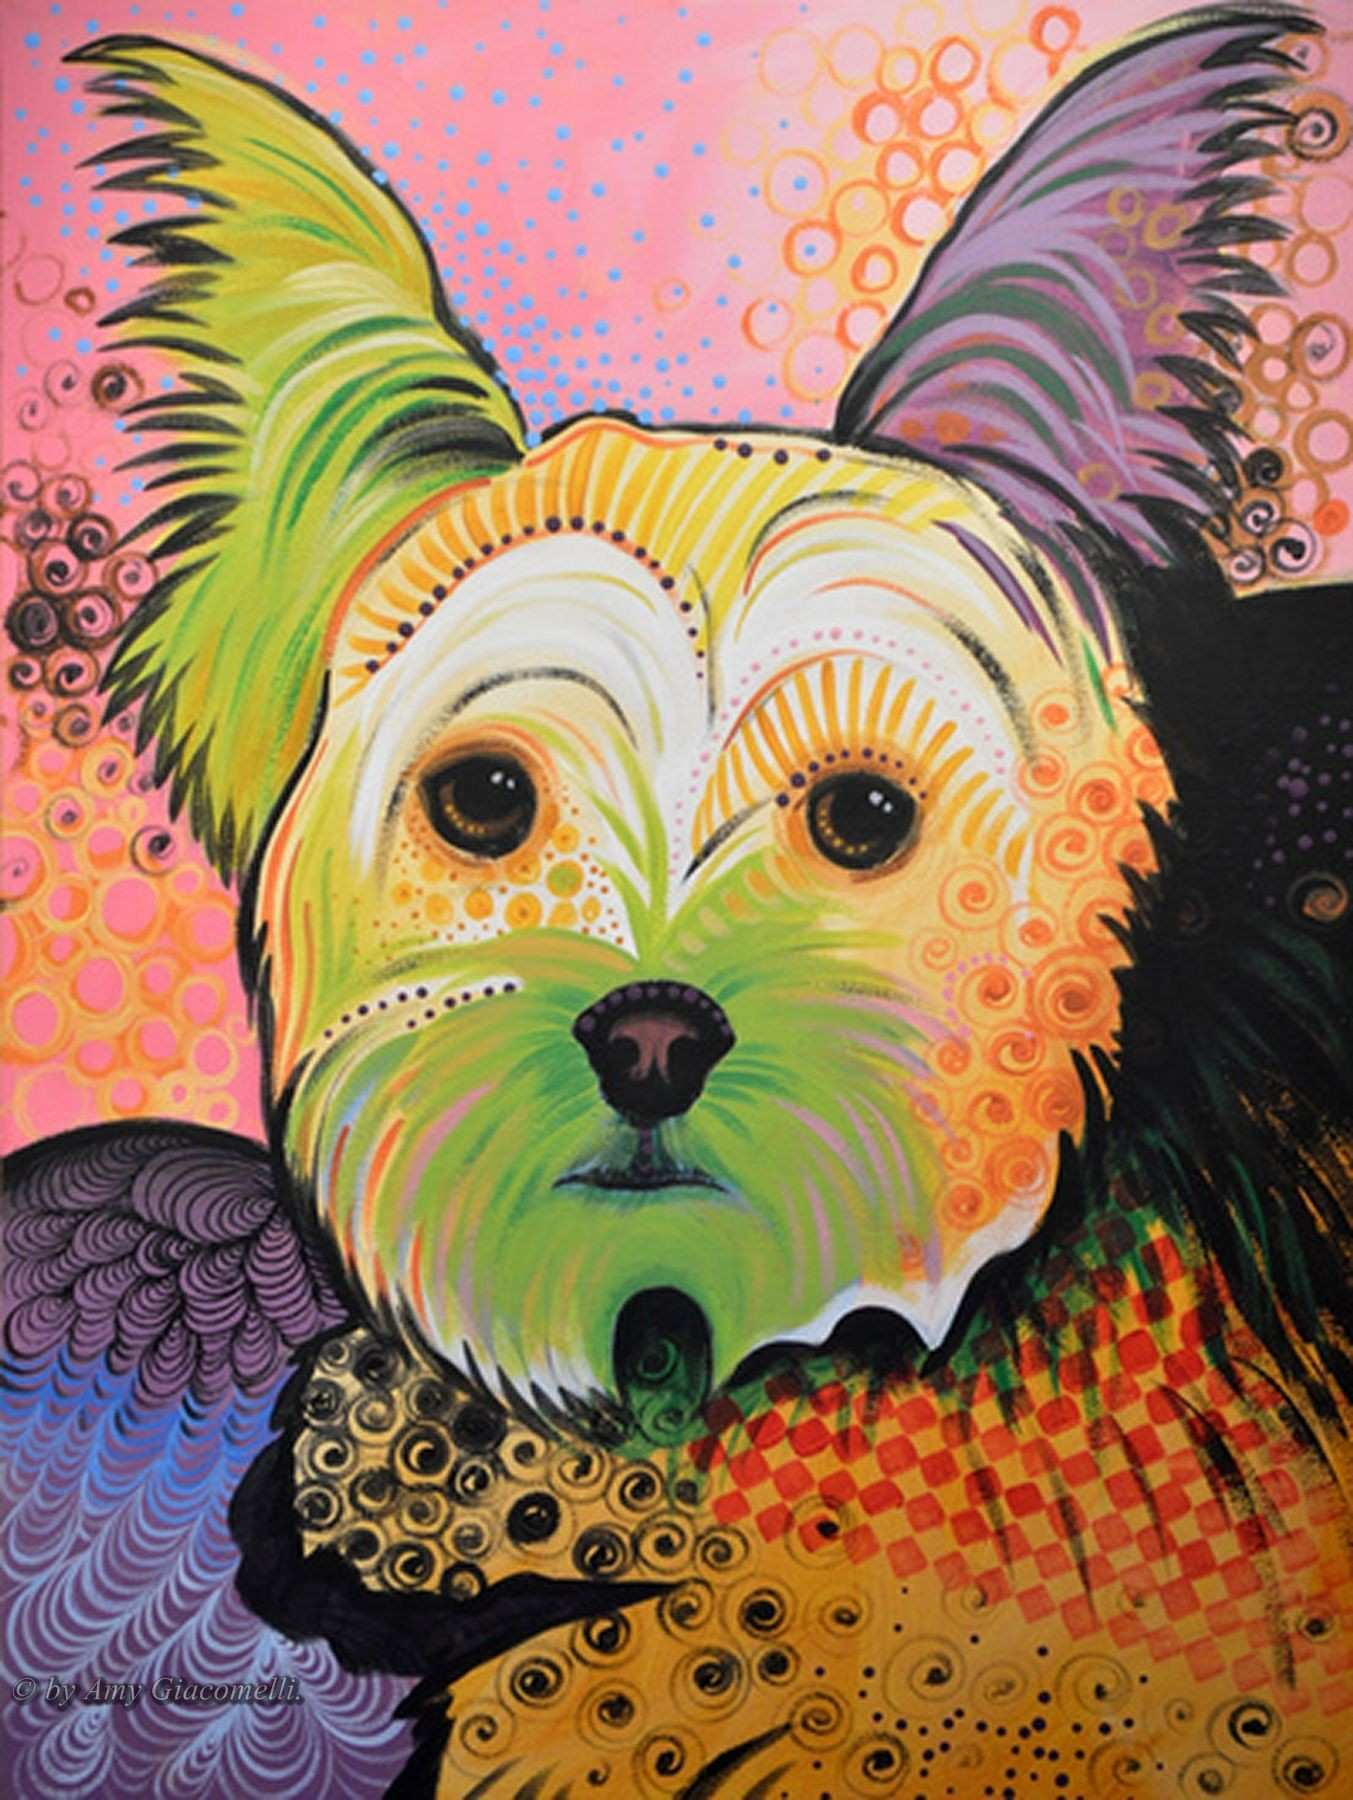 Daisy Abstract Yorkshire Terrier by Amy Gia elli